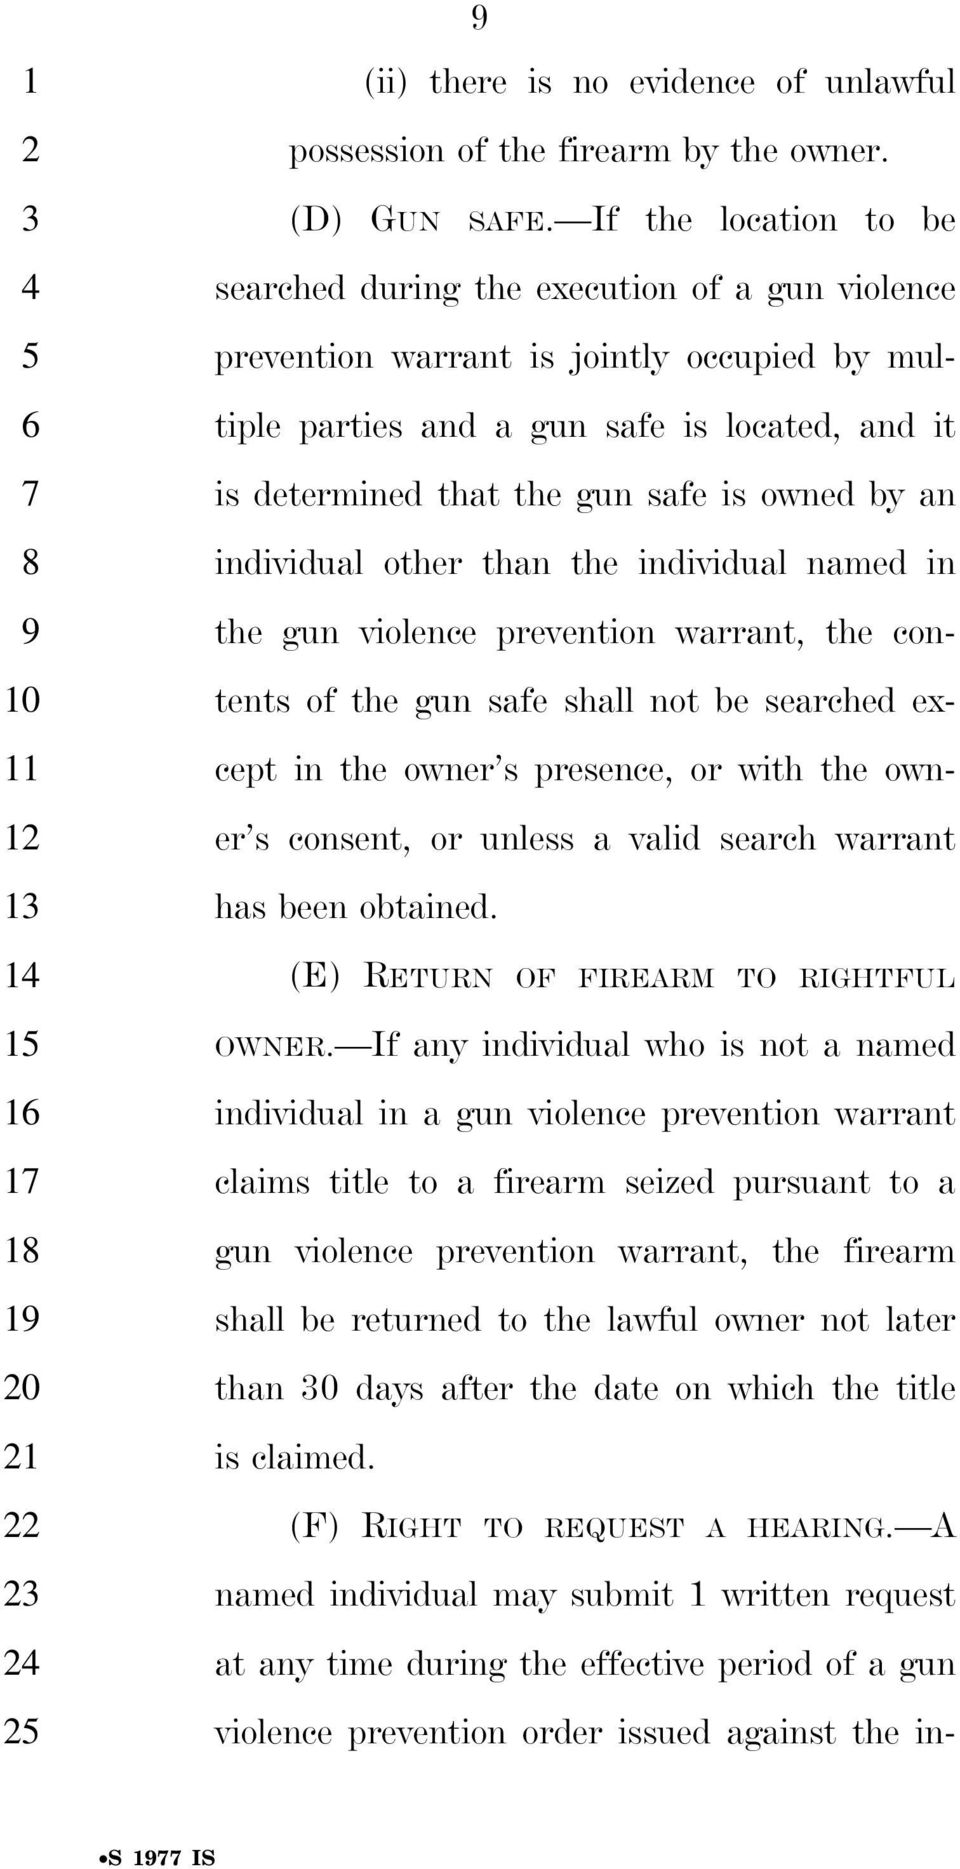 owned by an individual other than the individual named in the gun violence prevention warrant, the contents of the gun safe shall not be searched except in the owner s presence, or with the owner s